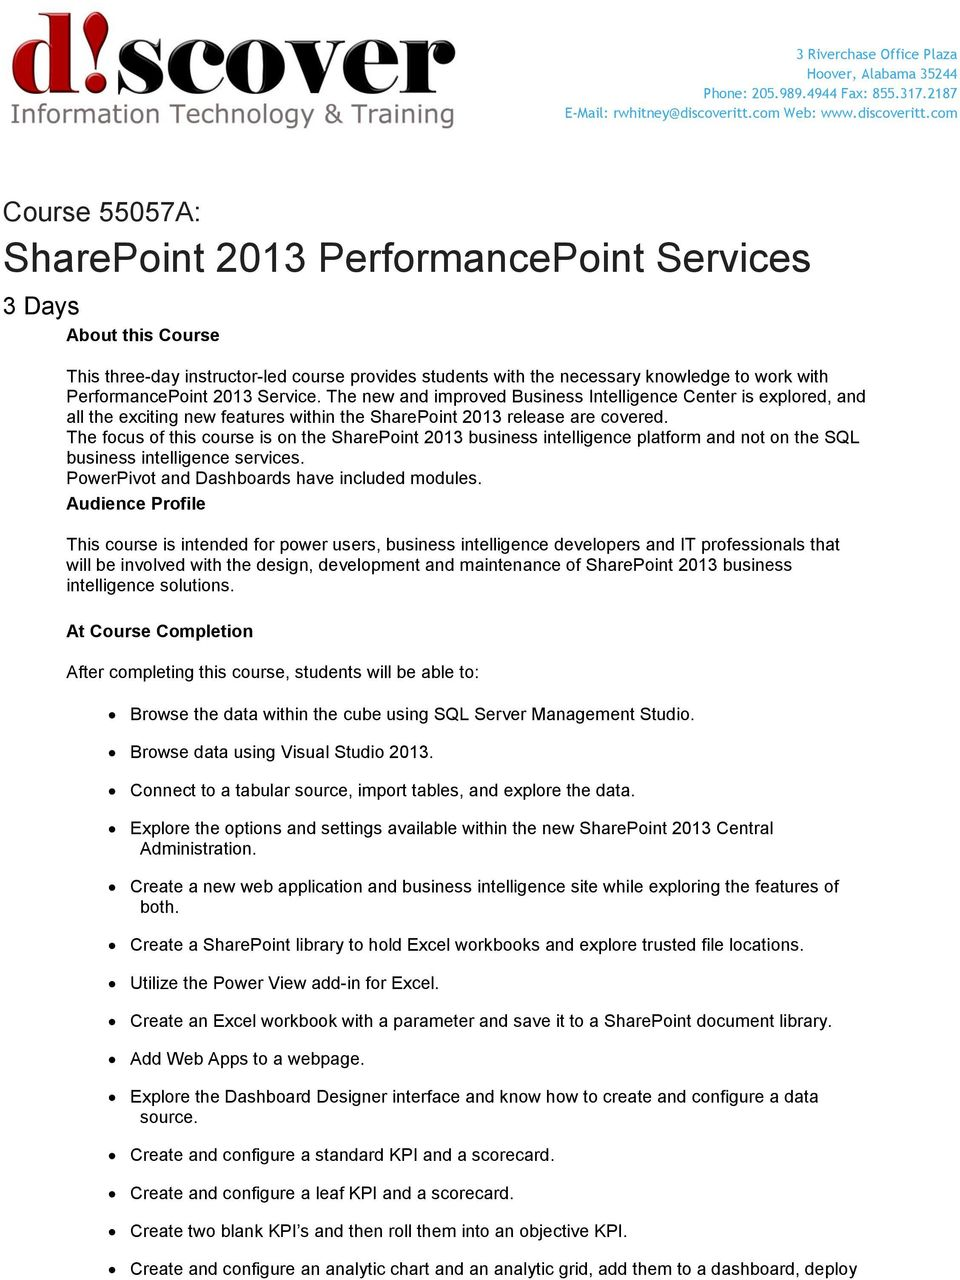 com Course 55057A: SharePoint 2013 PerformancePoint Services 3 Days About this Course This three-day instructor-led course provides students with the necessary knowledge to work with PerformancePoint